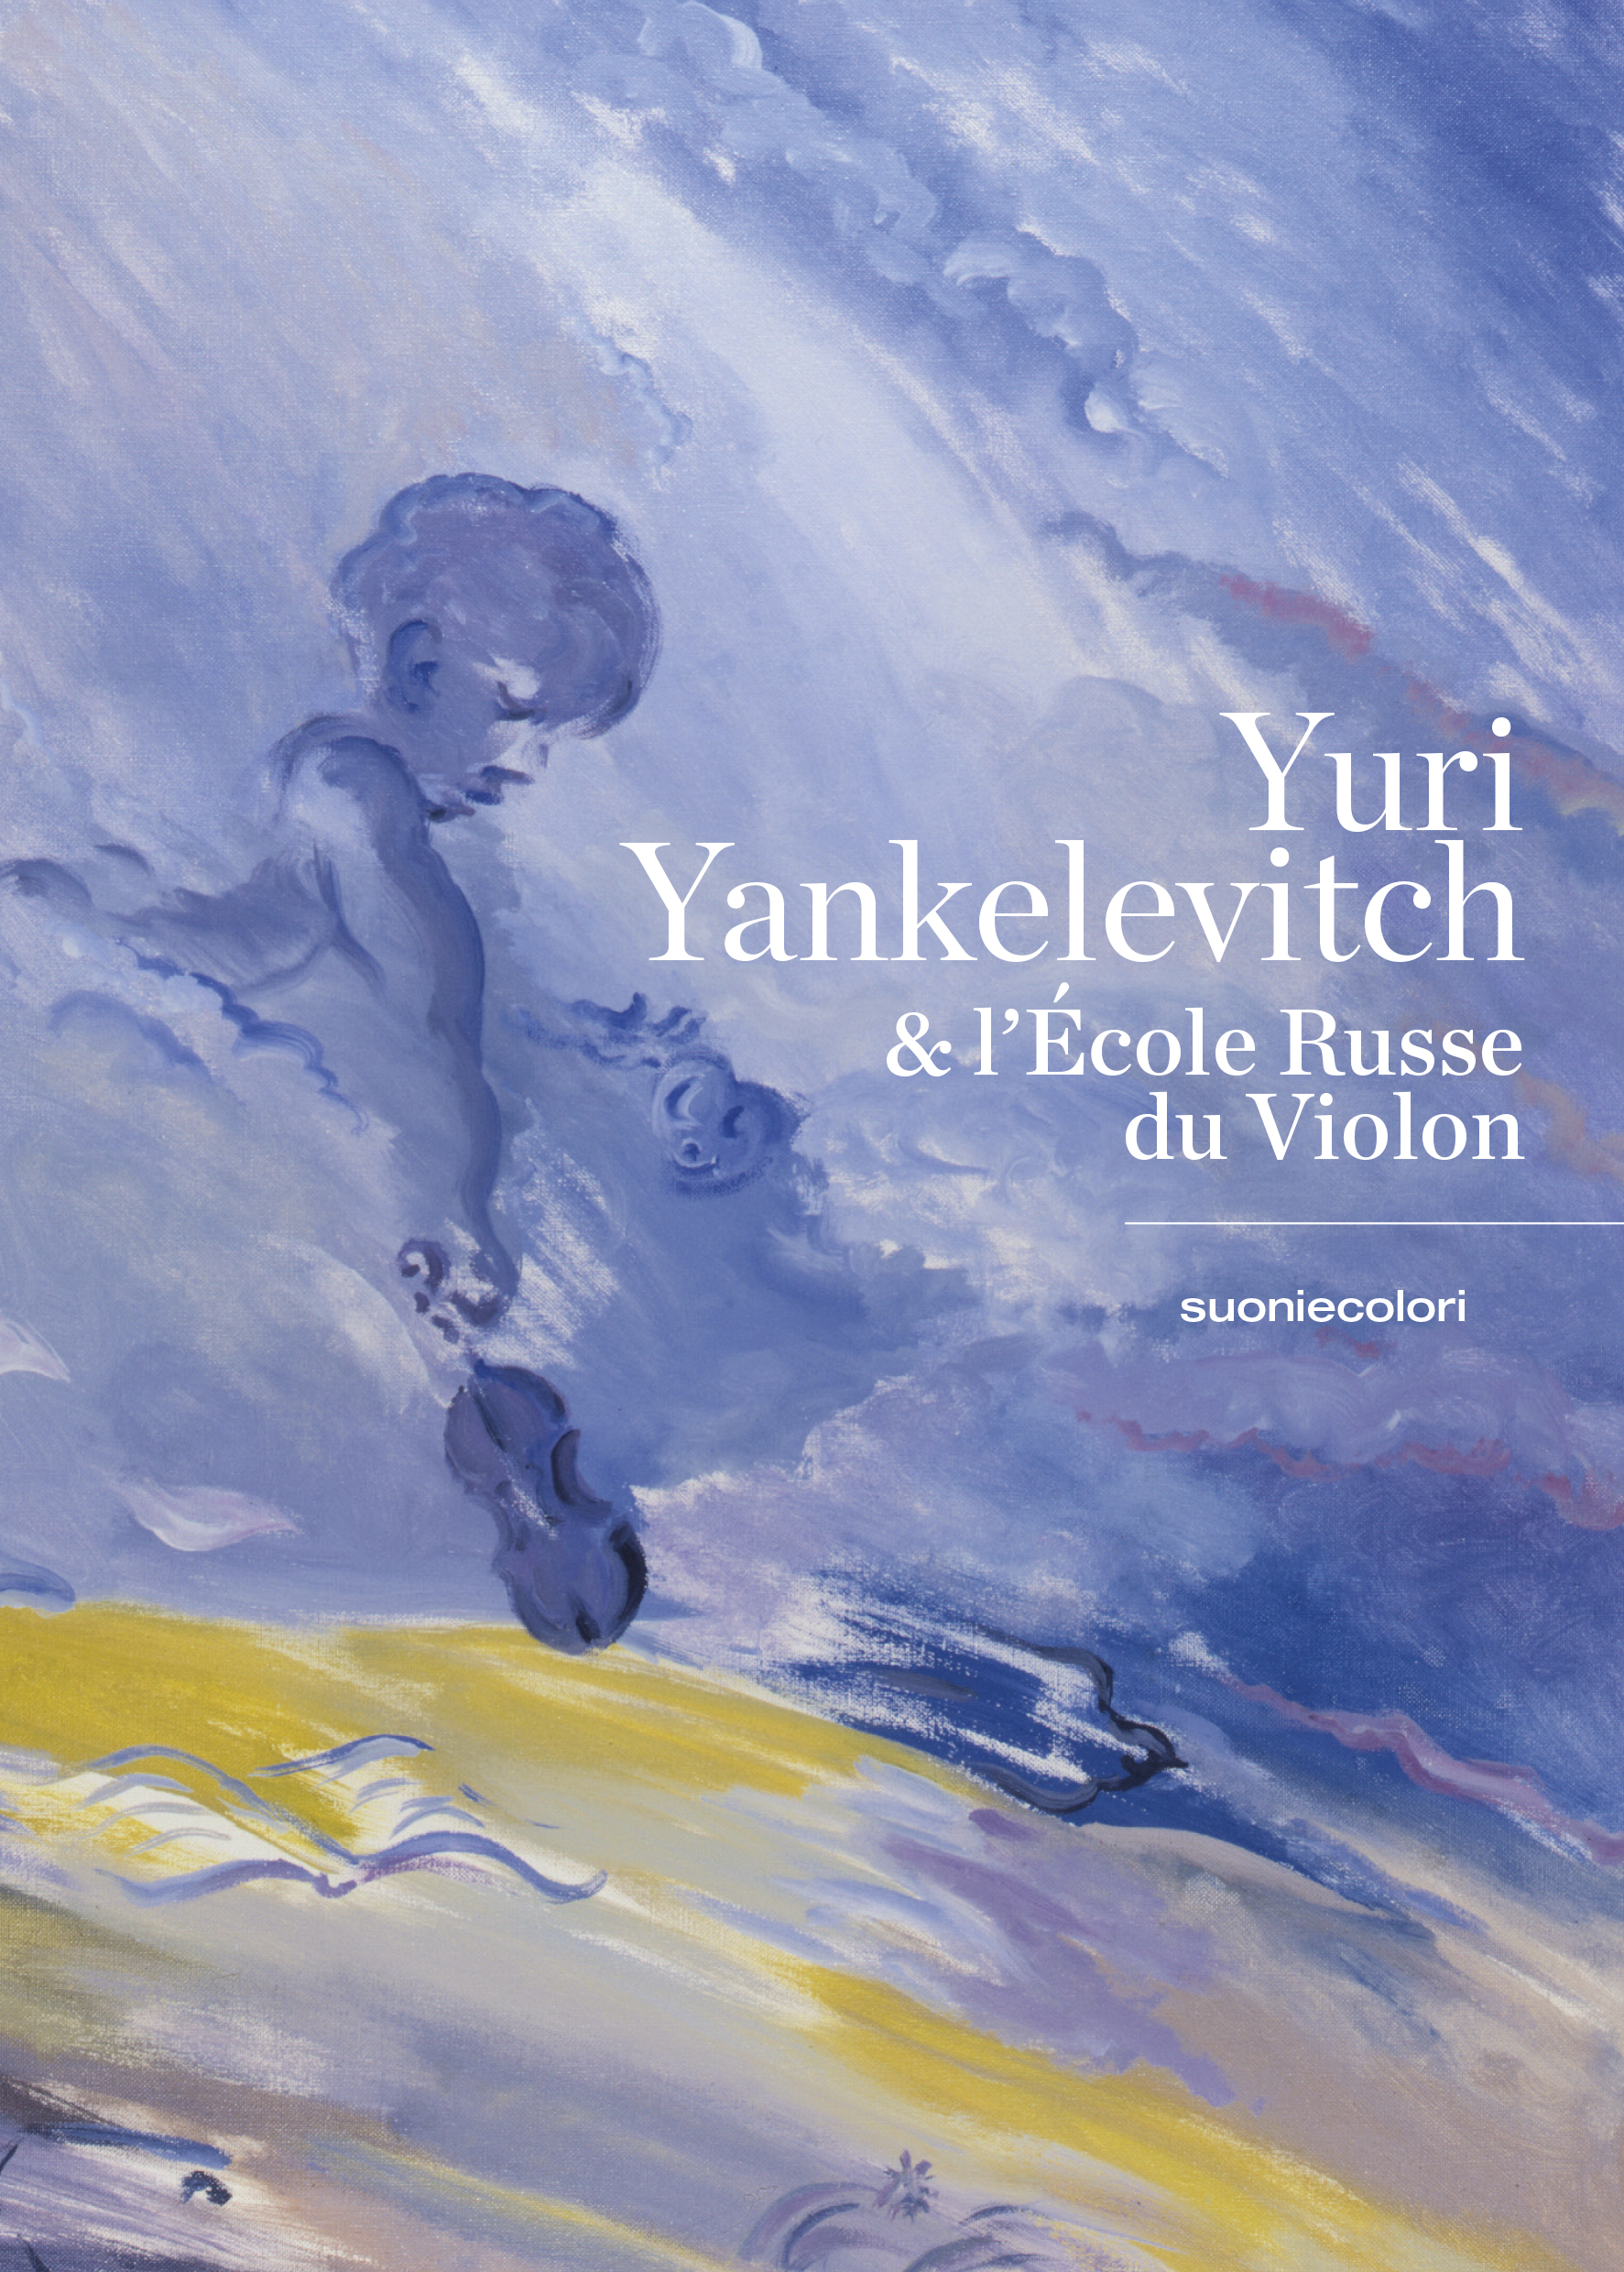 Book of Yankelevitch and  Russian School of violin